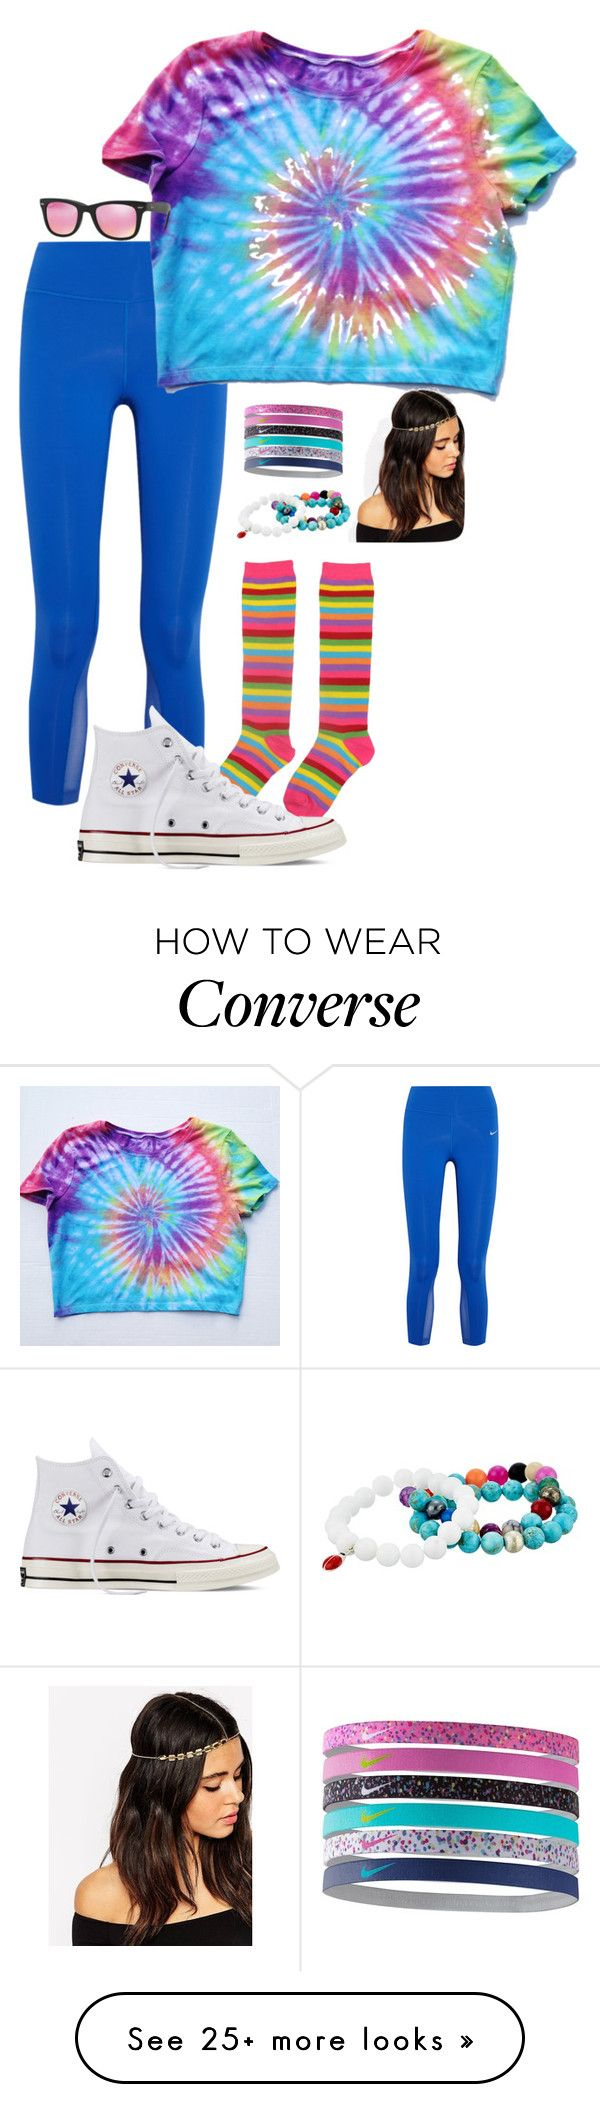 Unique ideas for spirit week -  Homecoming 2k15 Decade Day By Morgzz 07 On Polyvore Featuring Nike